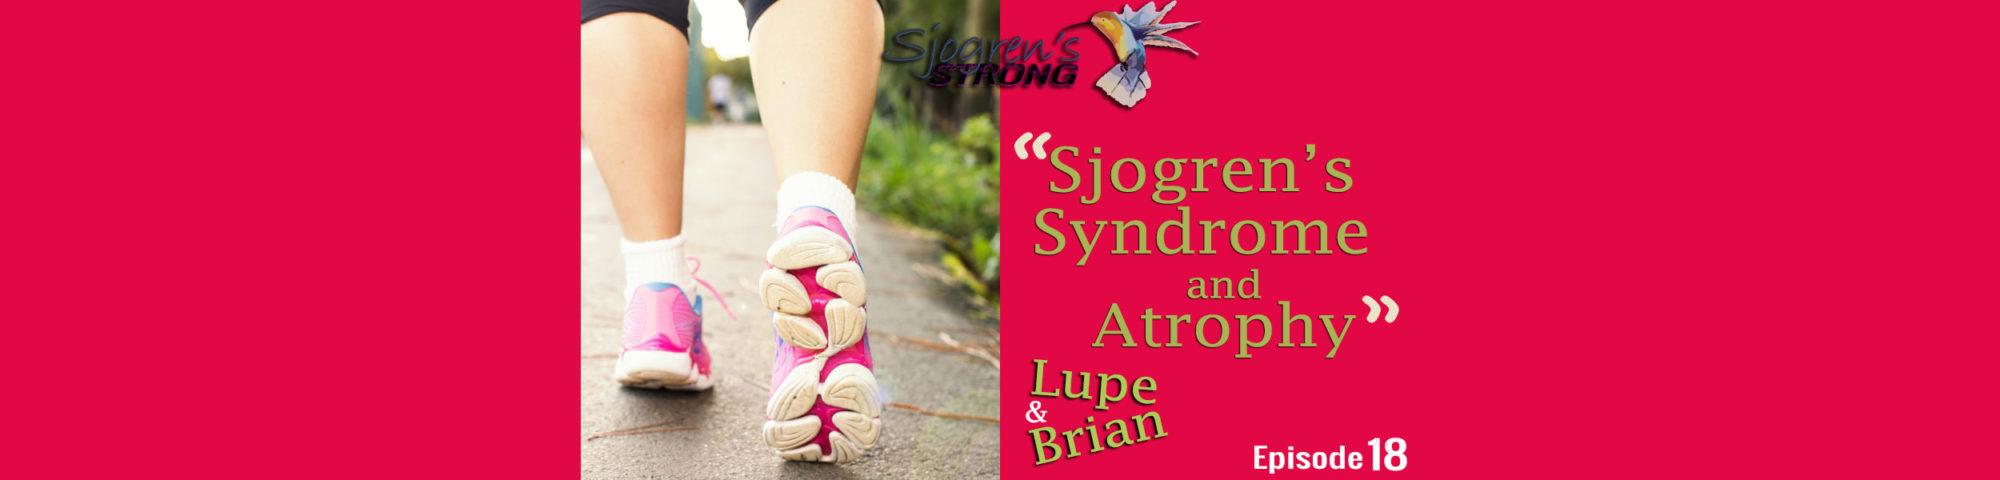 Sjogren's Strong Episode 18, Sjogren's Syndrome and Atrophy